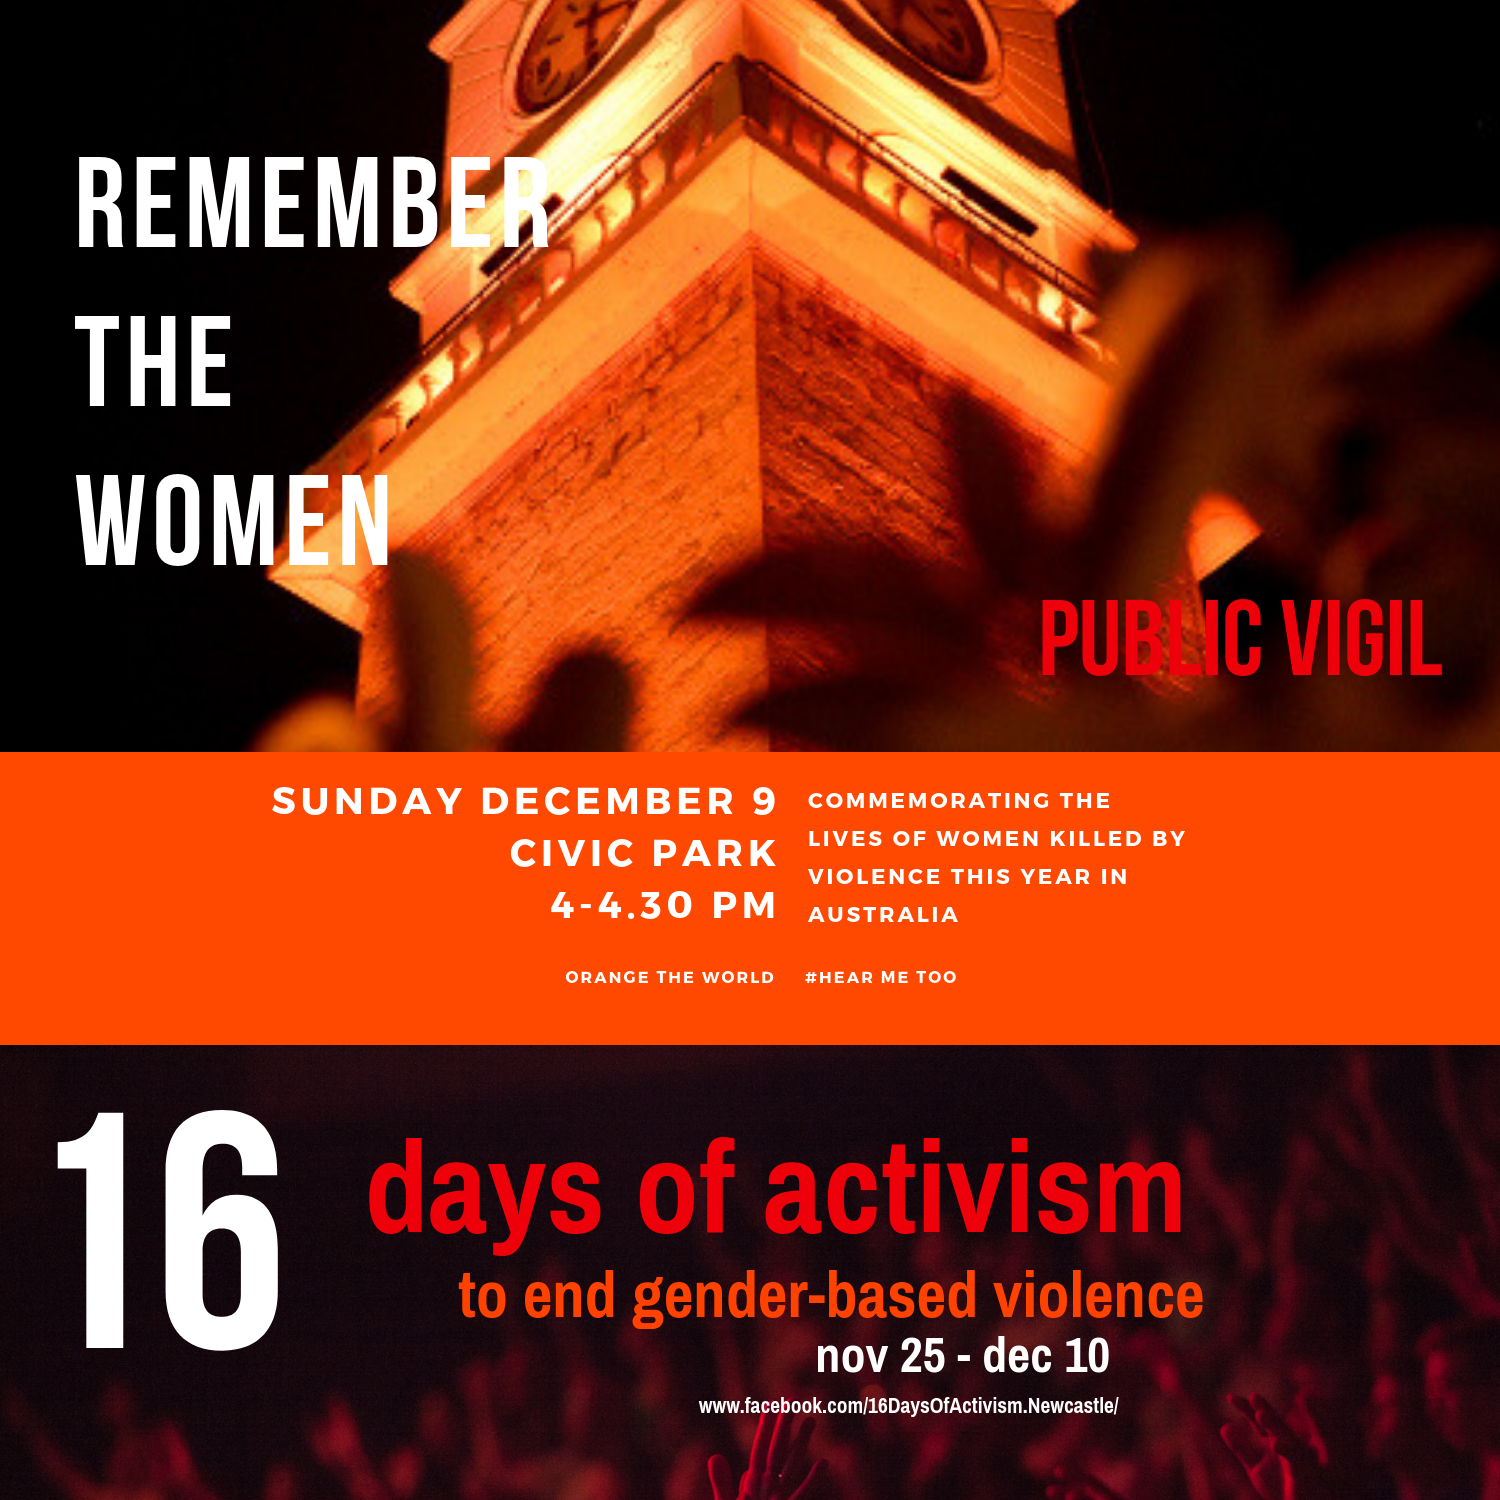 Remembering the women - public vigil